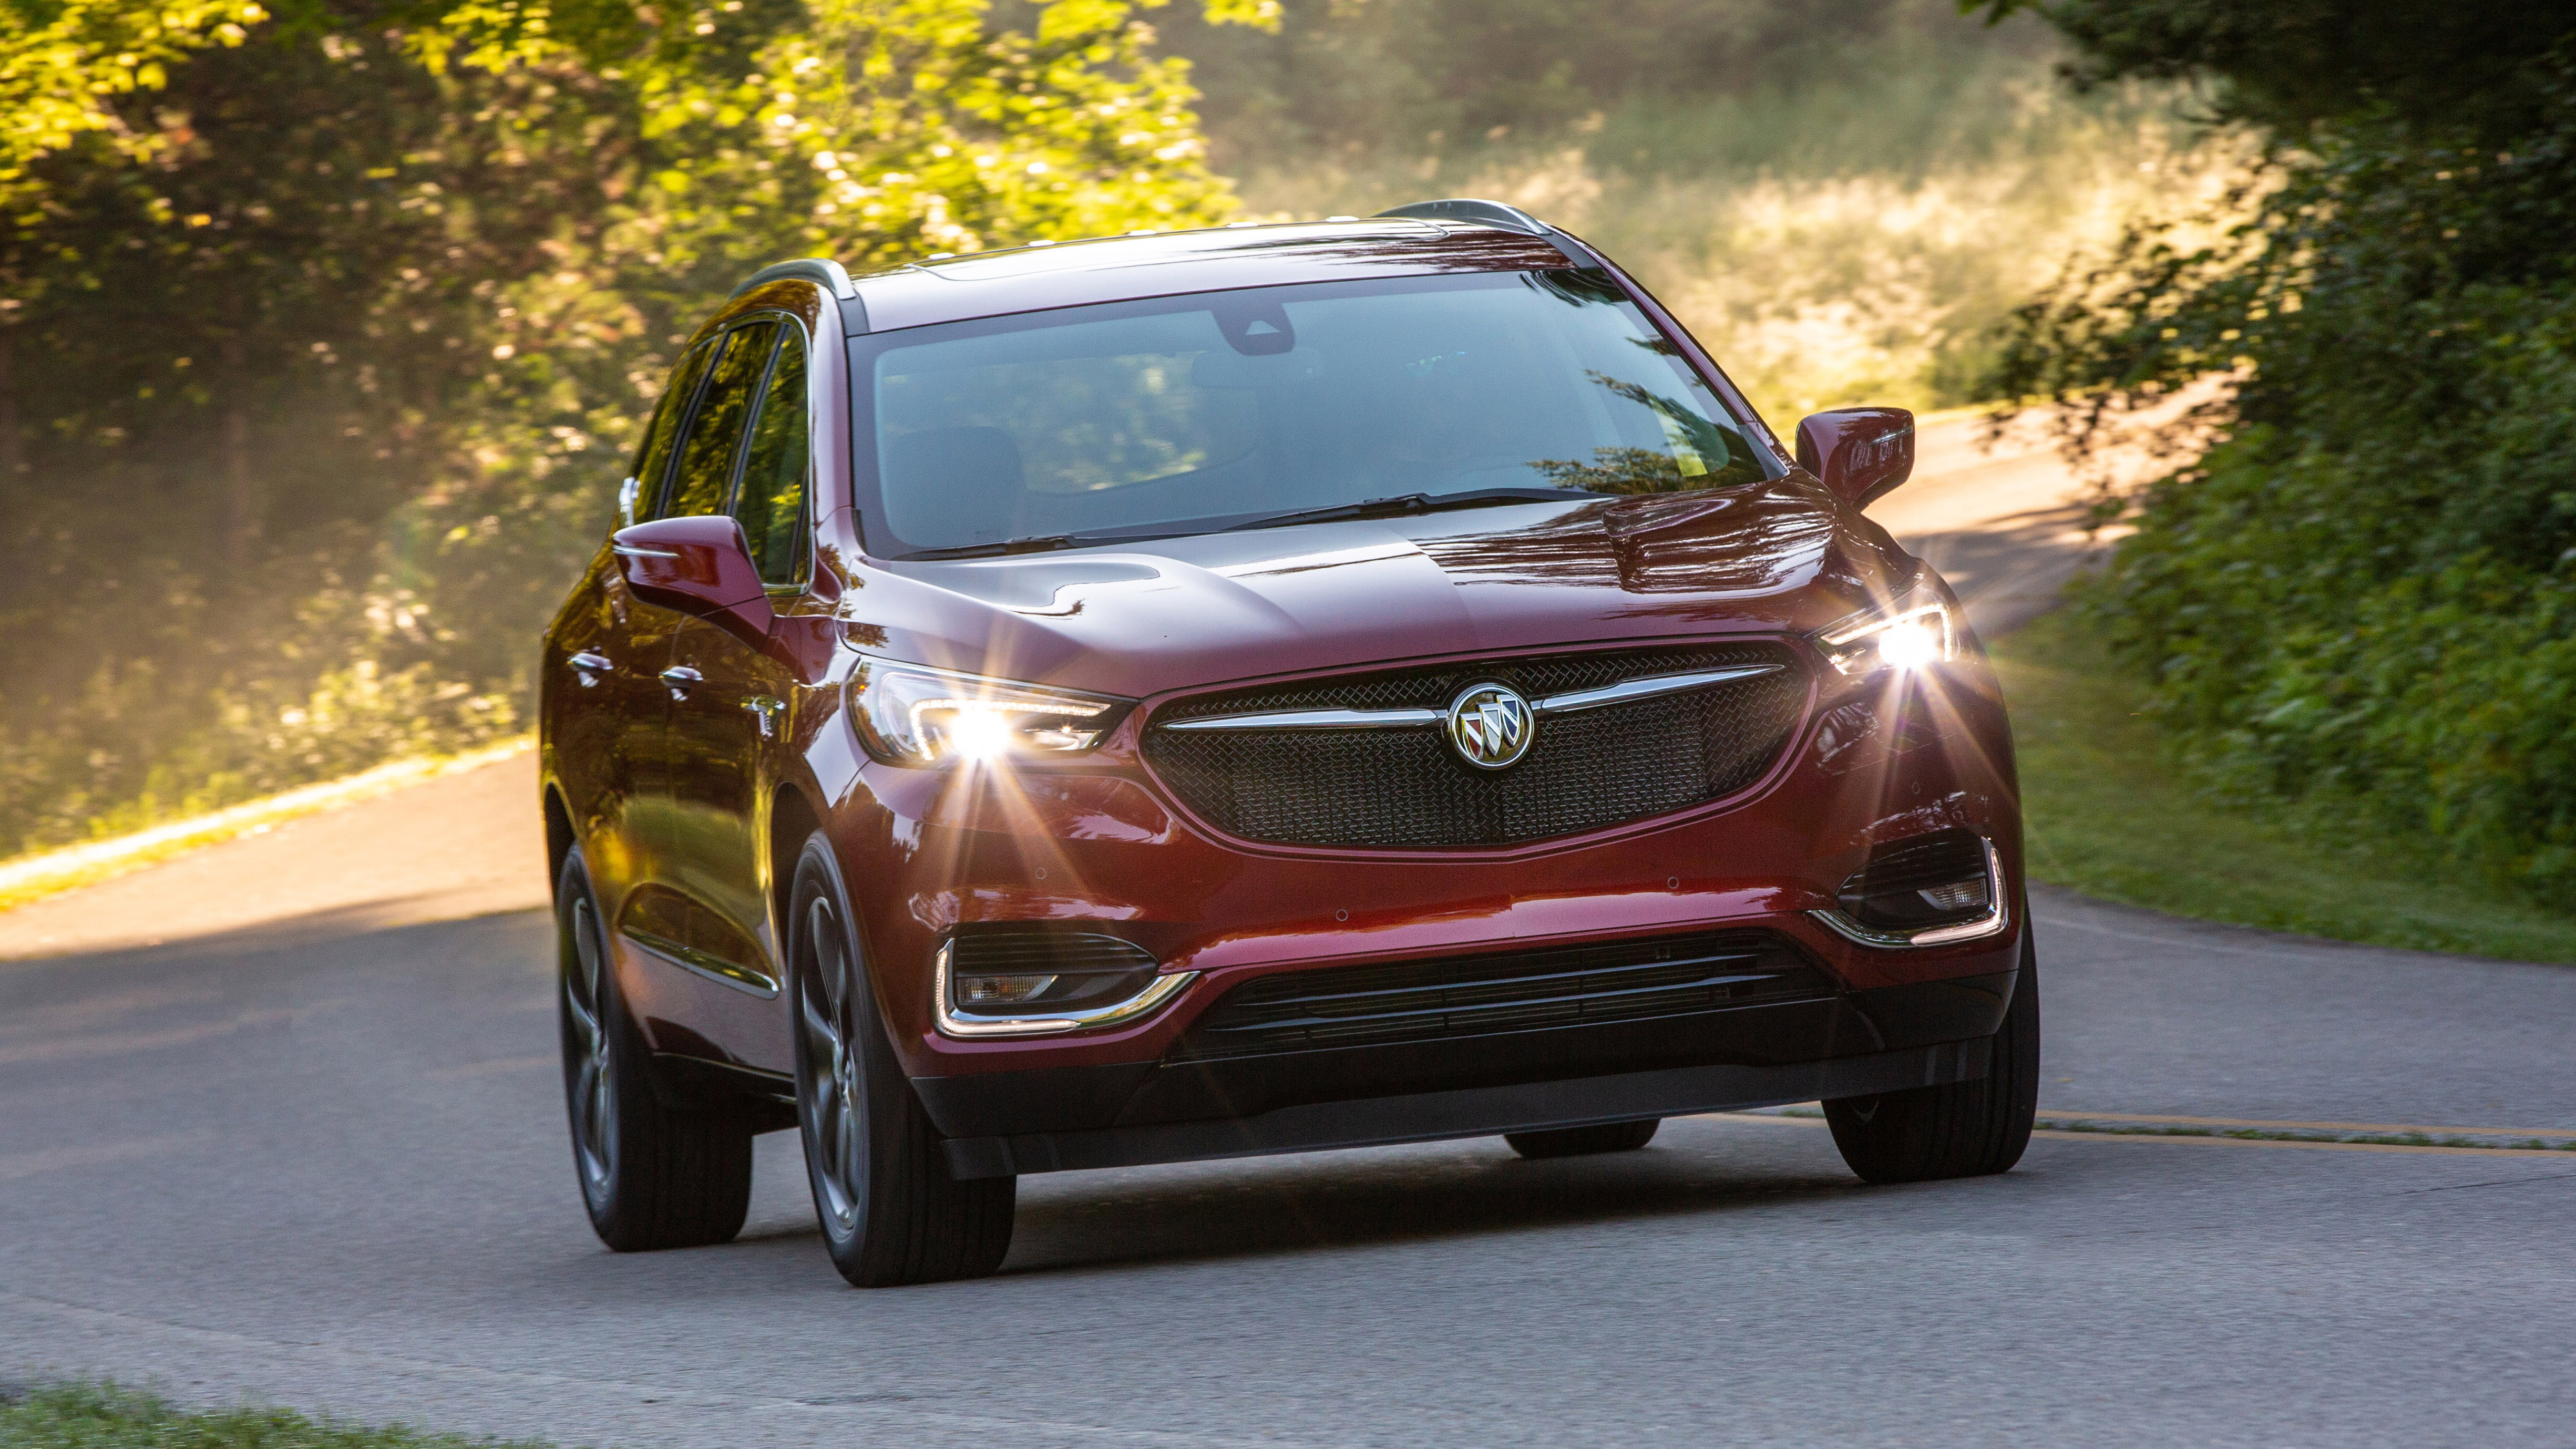 2020 buick enclave lineup adds sport touring trim  new tech features